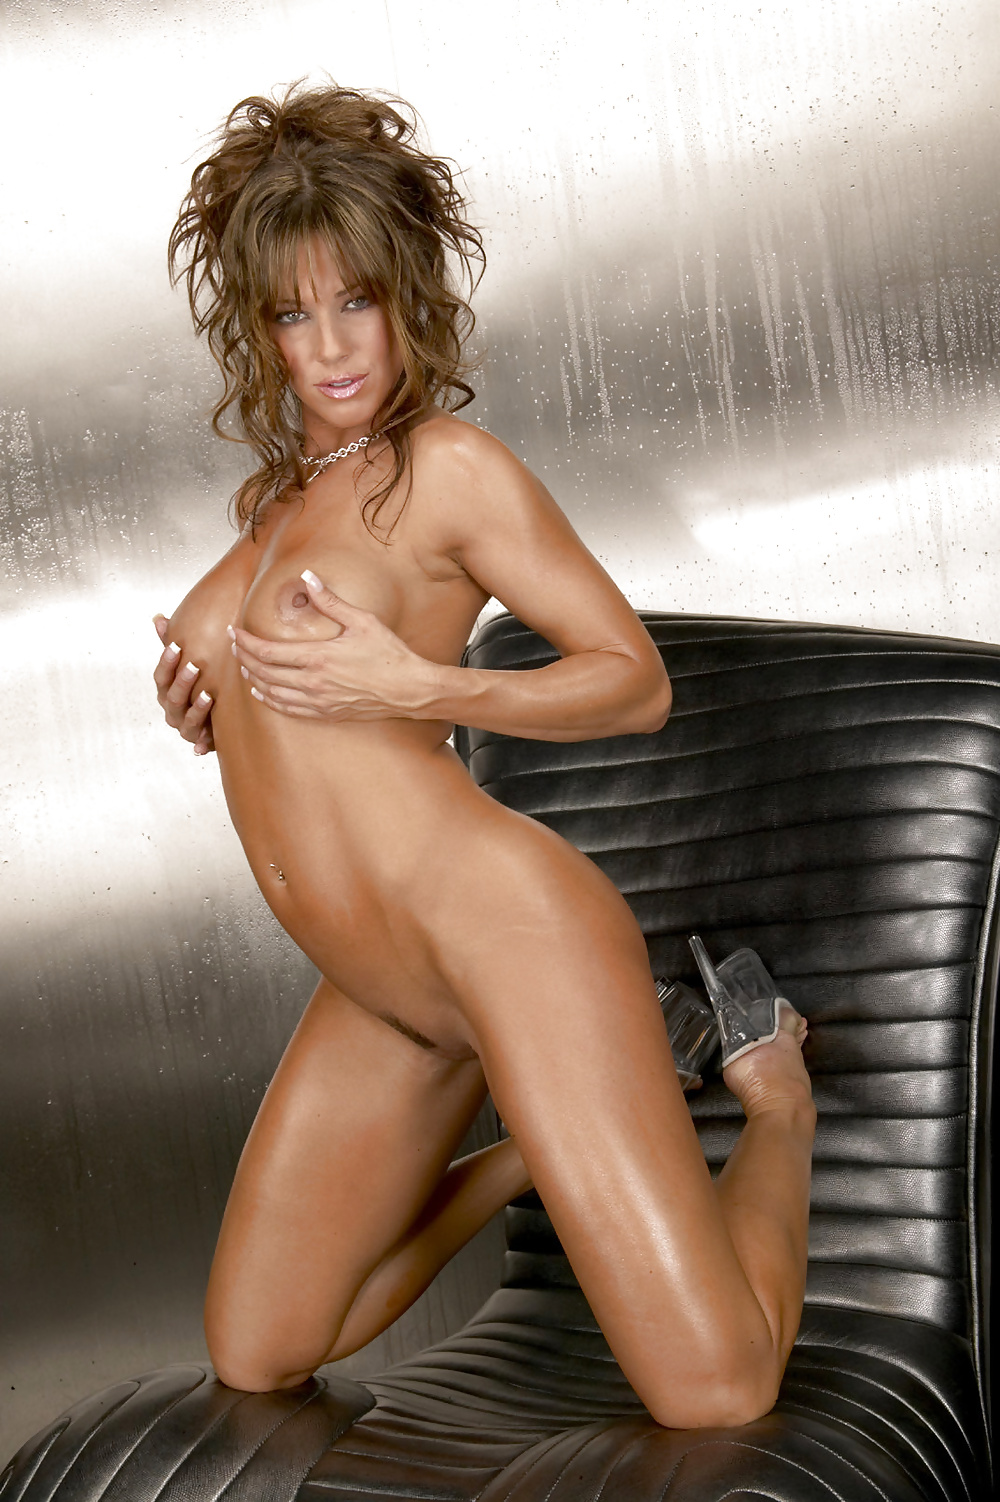 Racquel darrian getting naked — 6